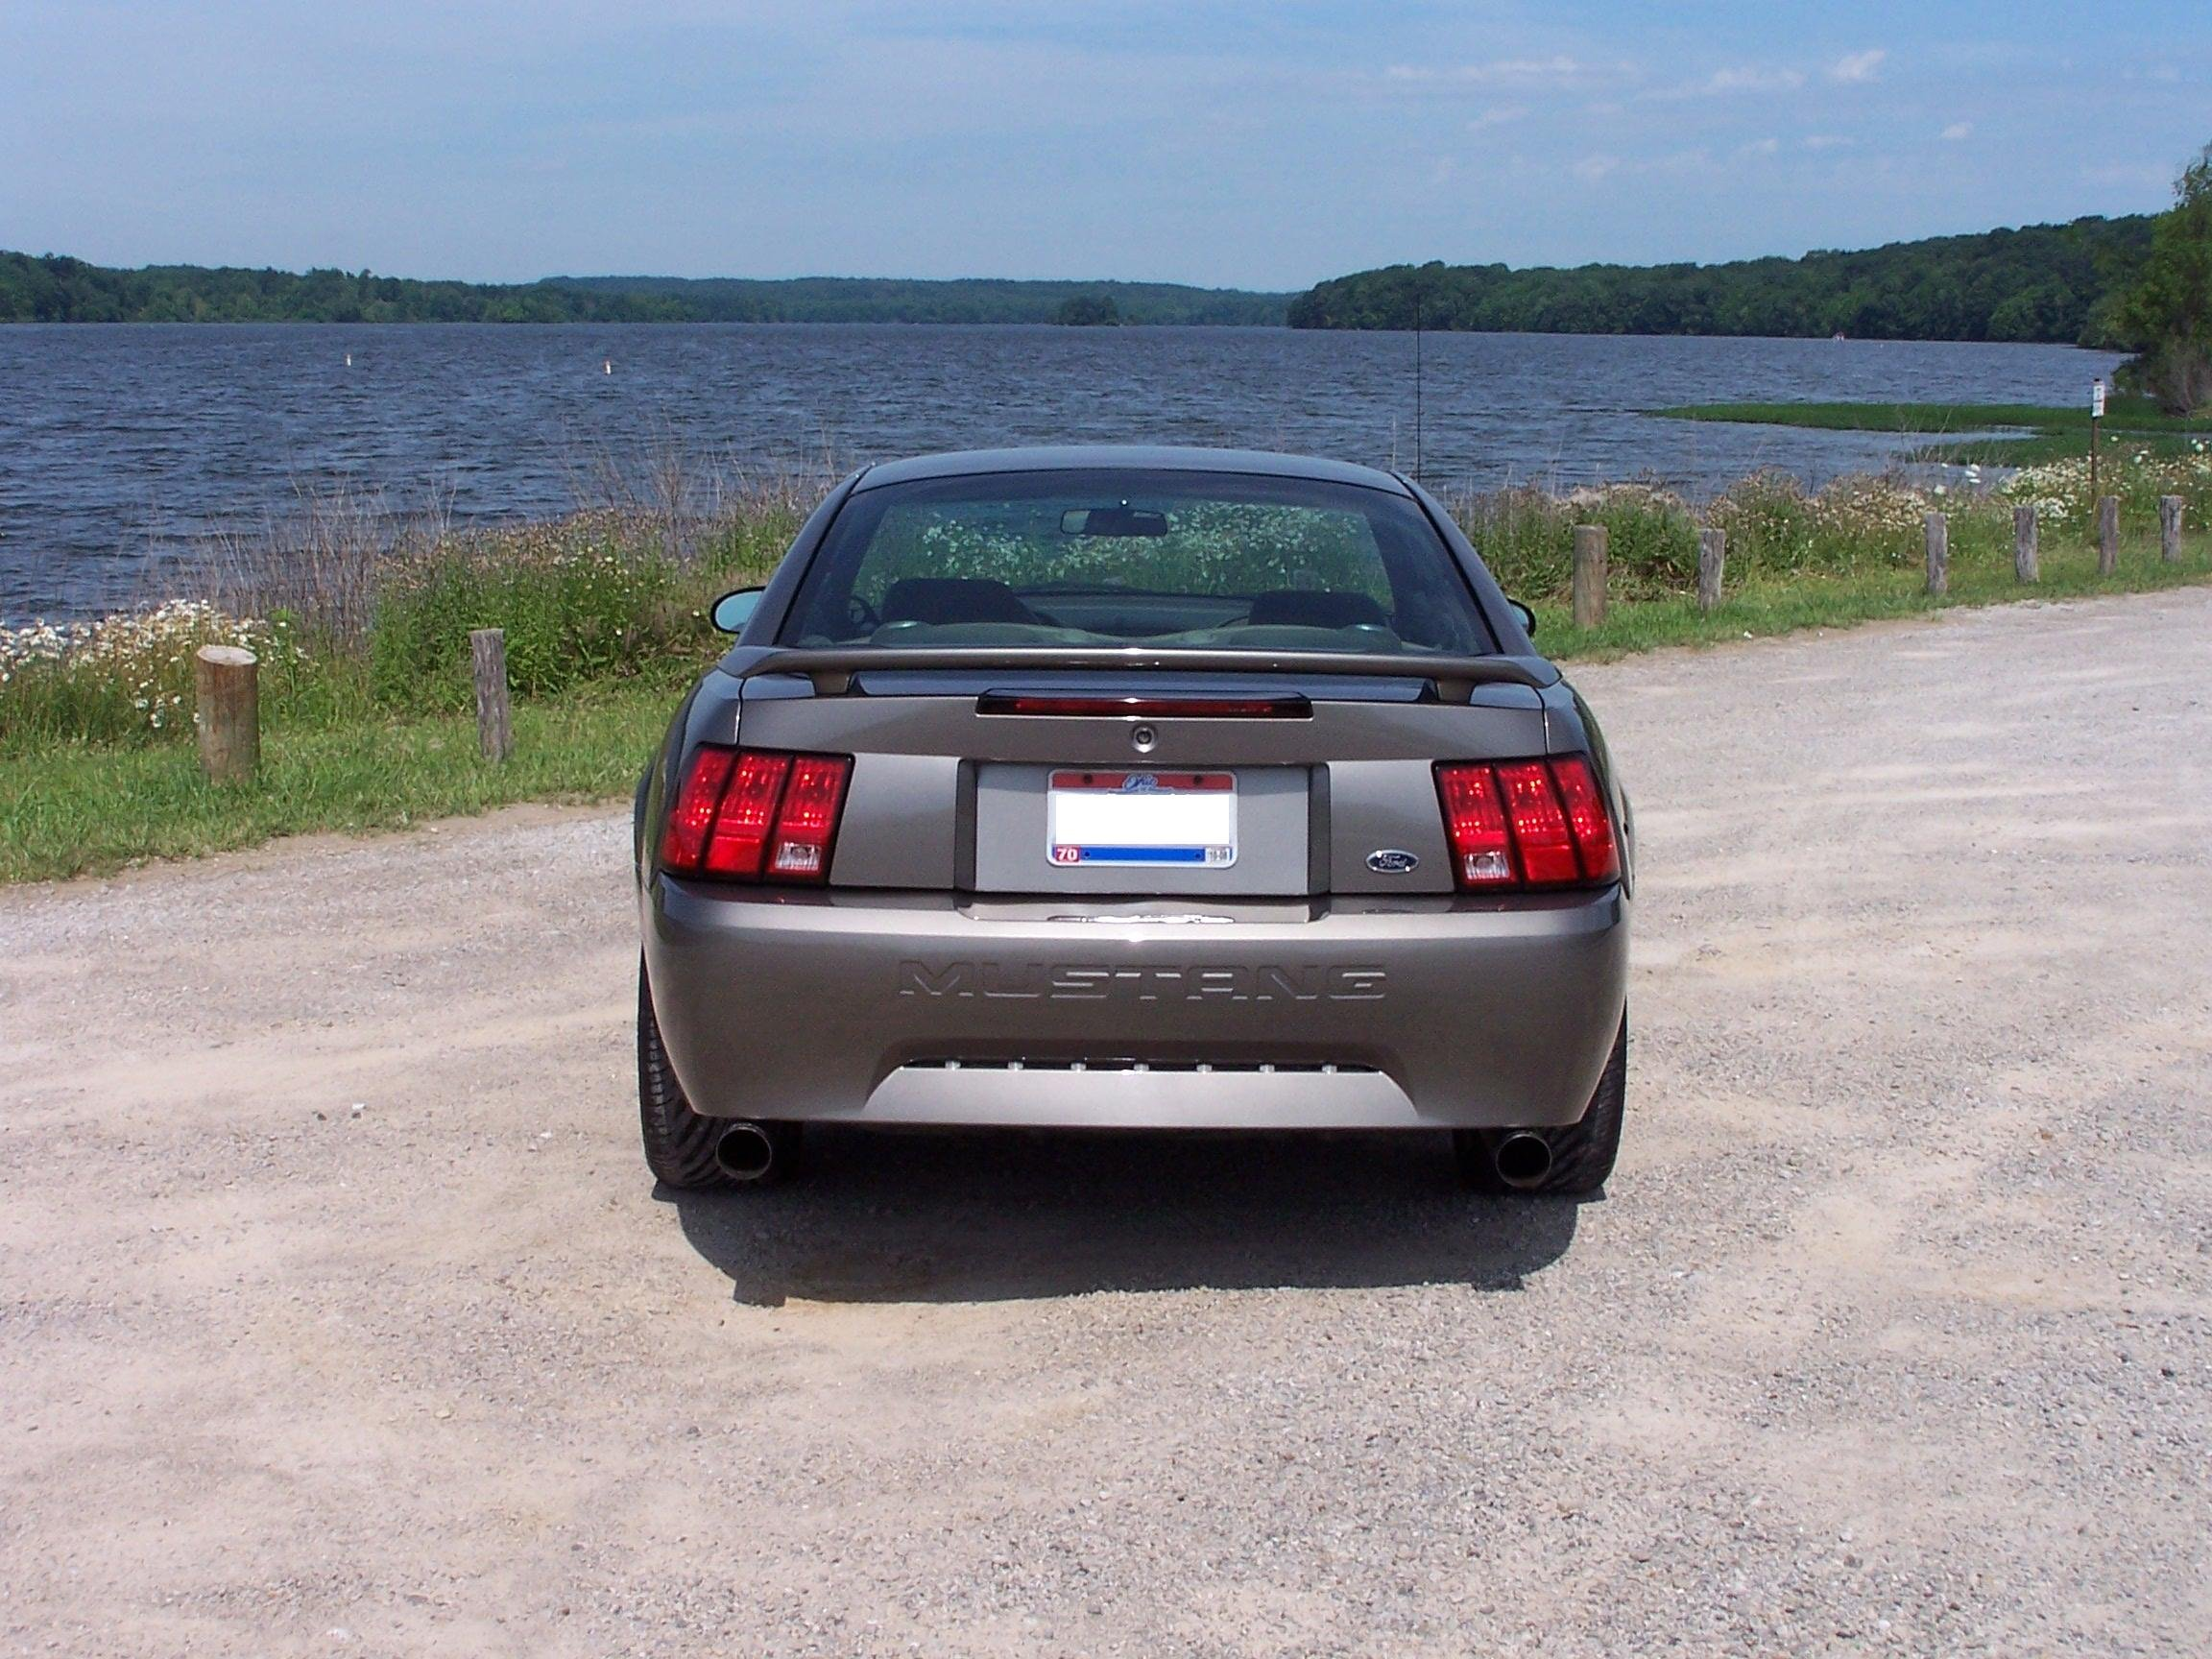 2001 V6 Mustang Exhaust And Bumper Ford Mustang Forum